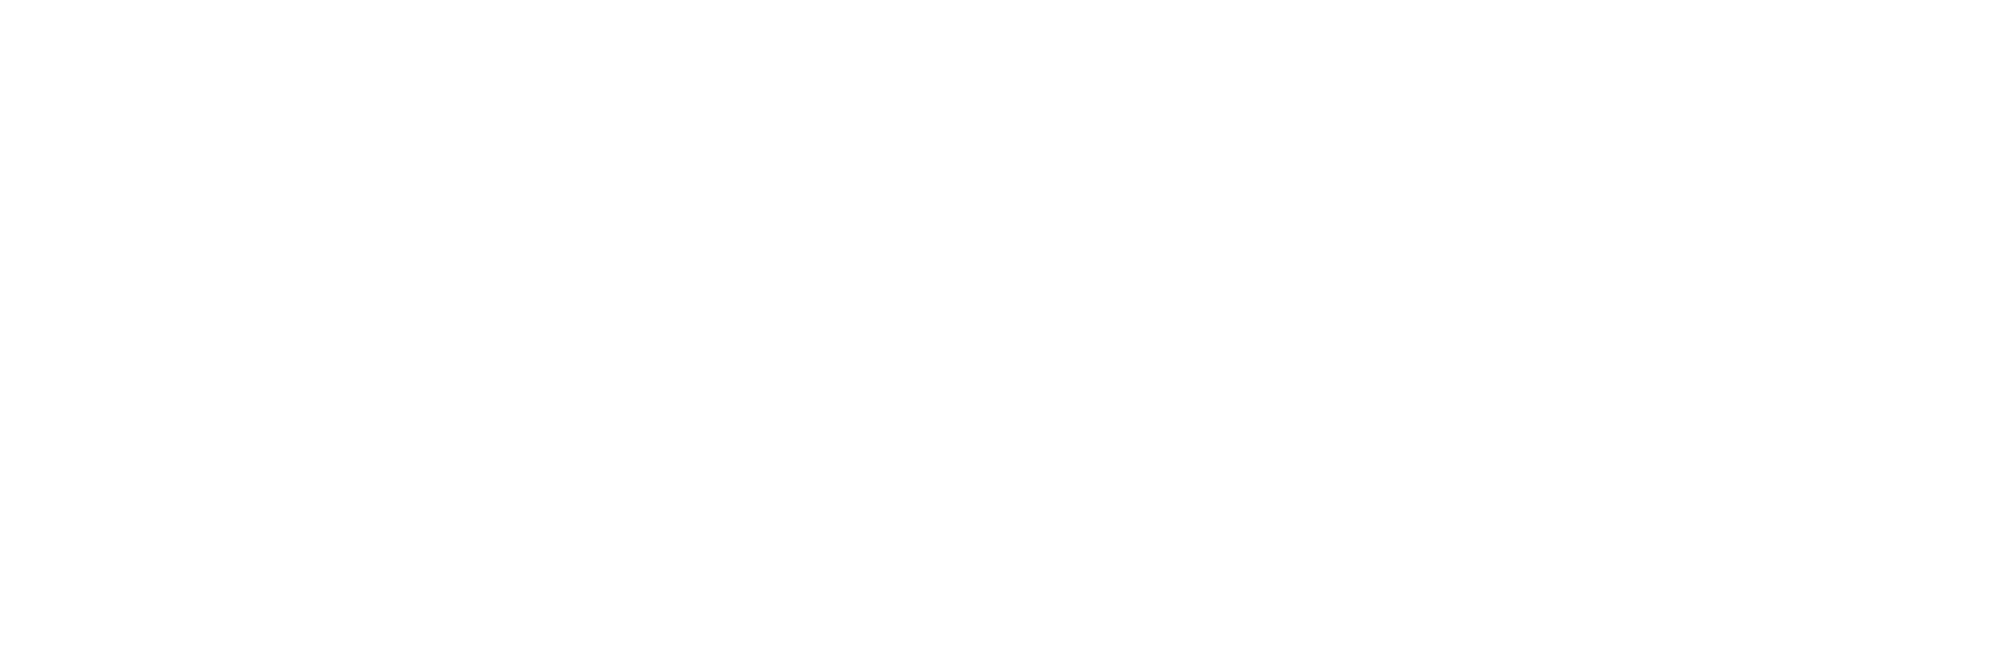 MI Global Resource Funds